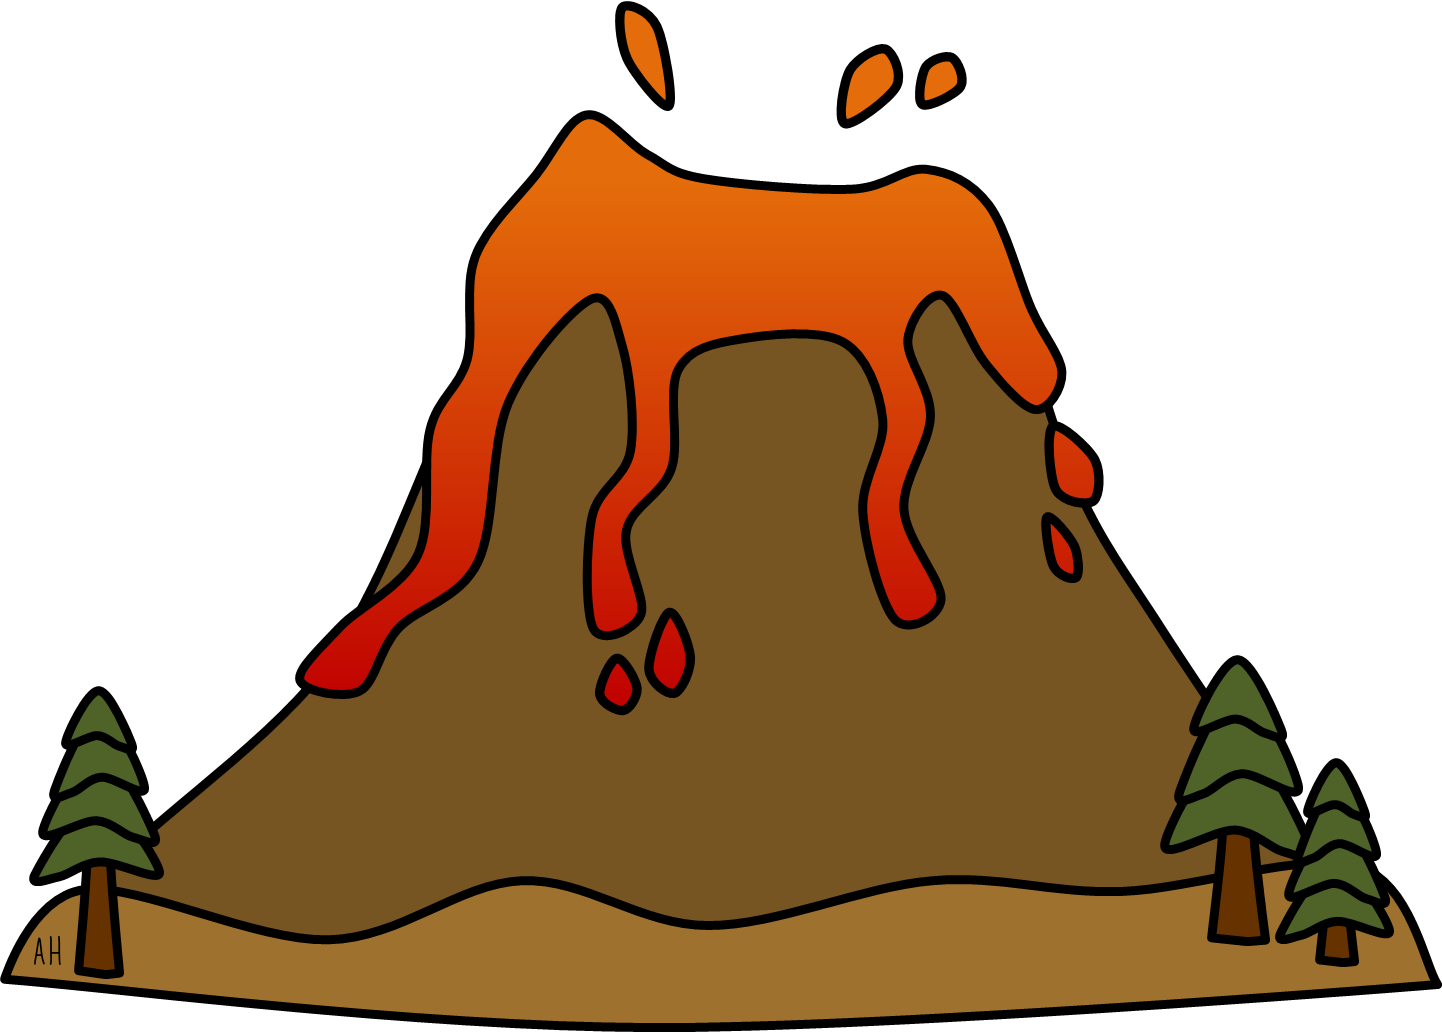 Volcano clipart #3, Download drawings